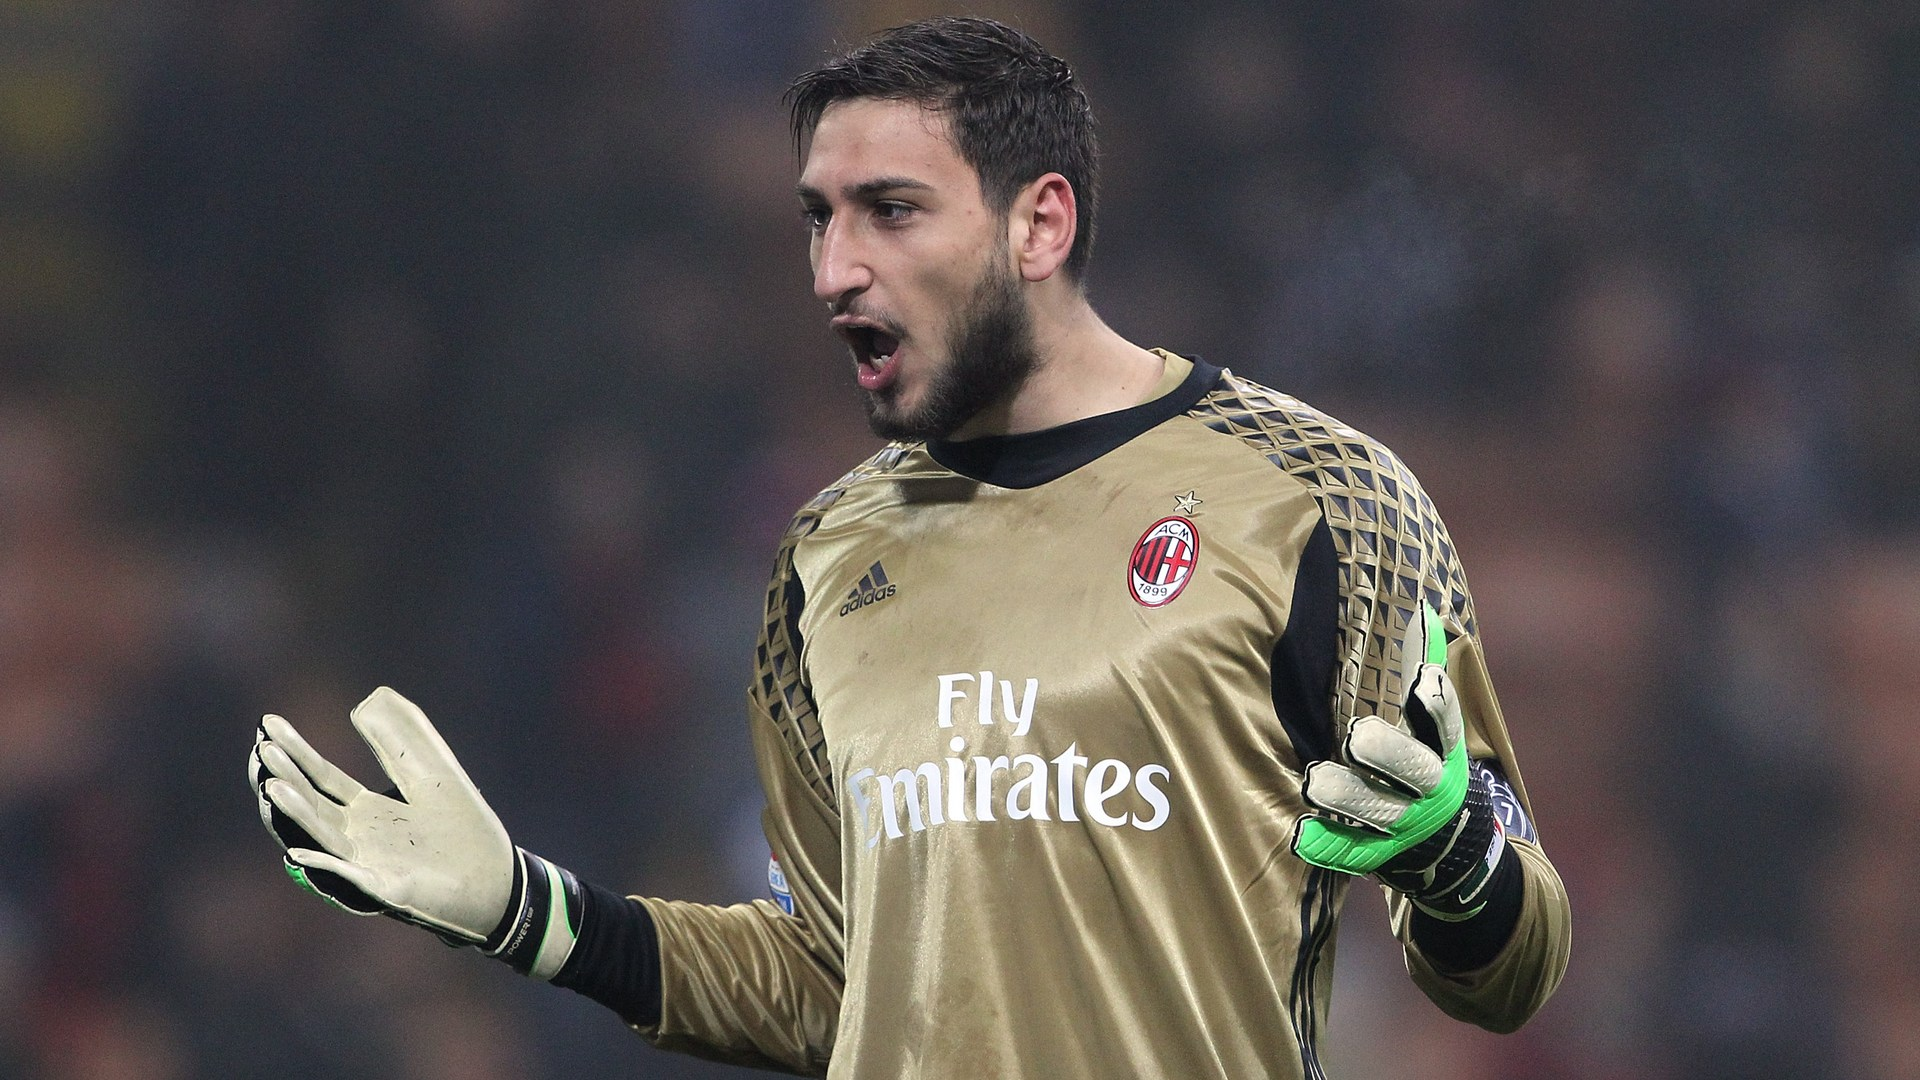 Fans throw fake money at Donnarumma after he refuses contract extension